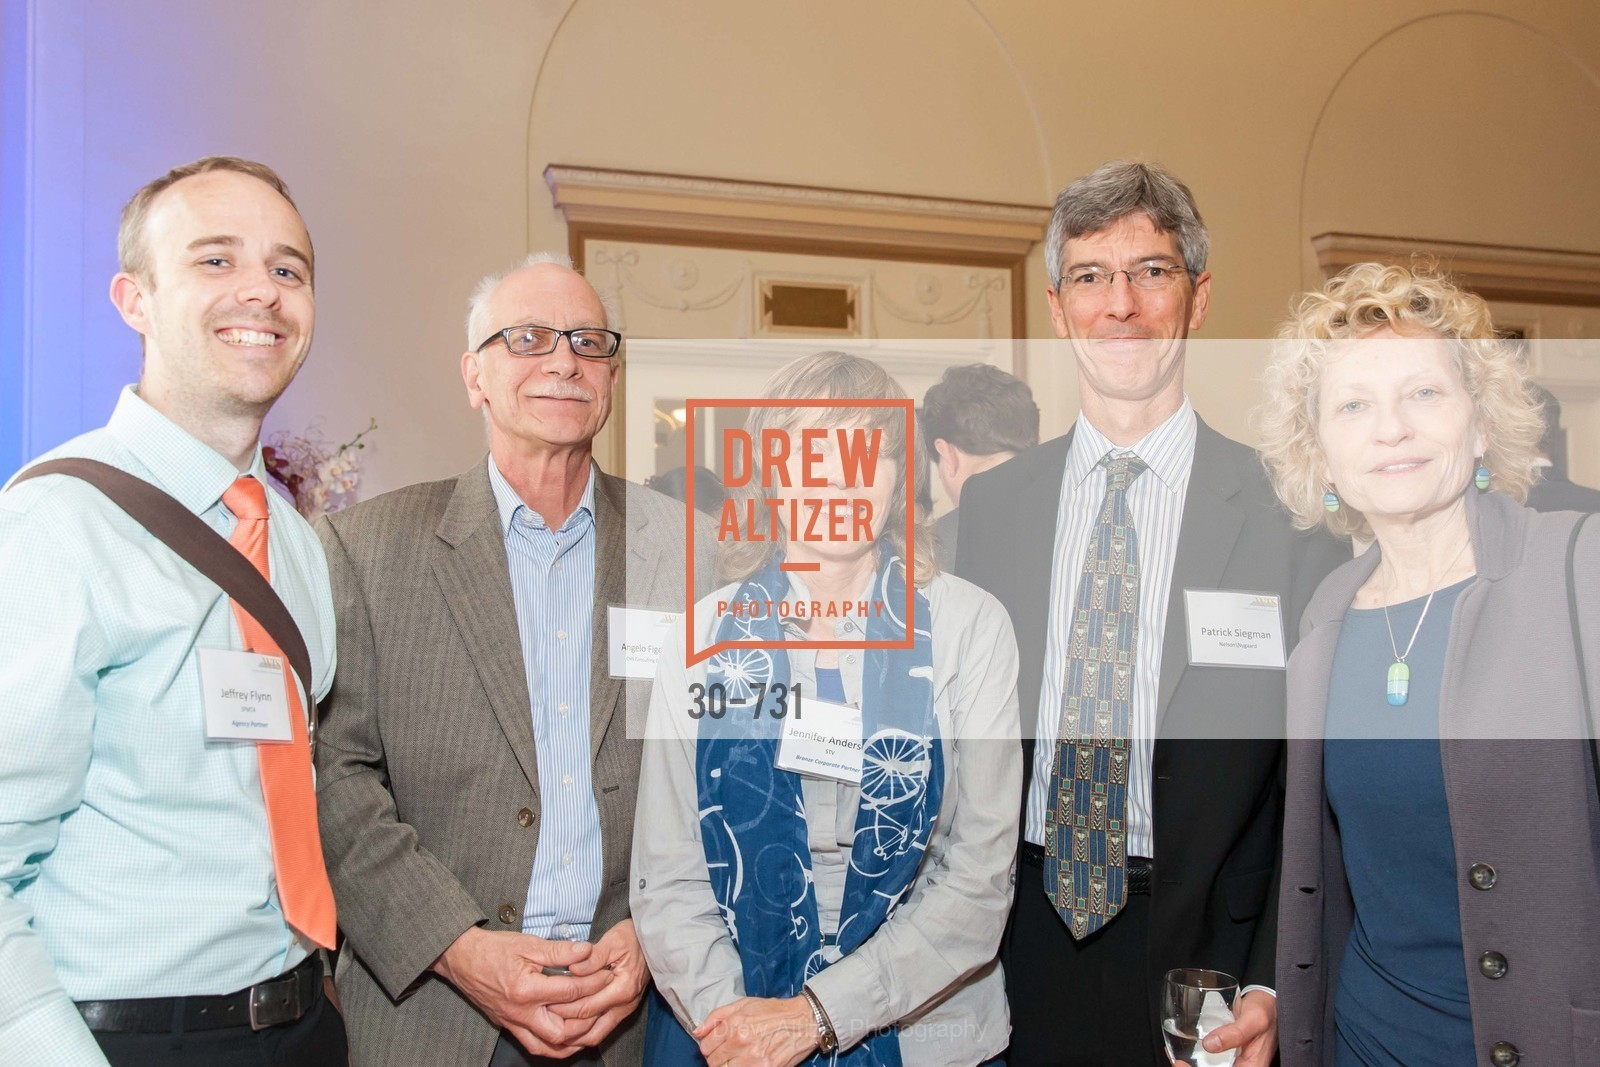 Jeffrey Flynn, Jennifer Anderson, Patrick Siegman, WOMEN'S TRANSPORTATION SEMINAR SF Bay Area Chapter Annual Scholarship Awards, US, May 15th, 2015,Drew Altizer, Drew Altizer Photography, full-service agency, private events, San Francisco photographer, photographer california